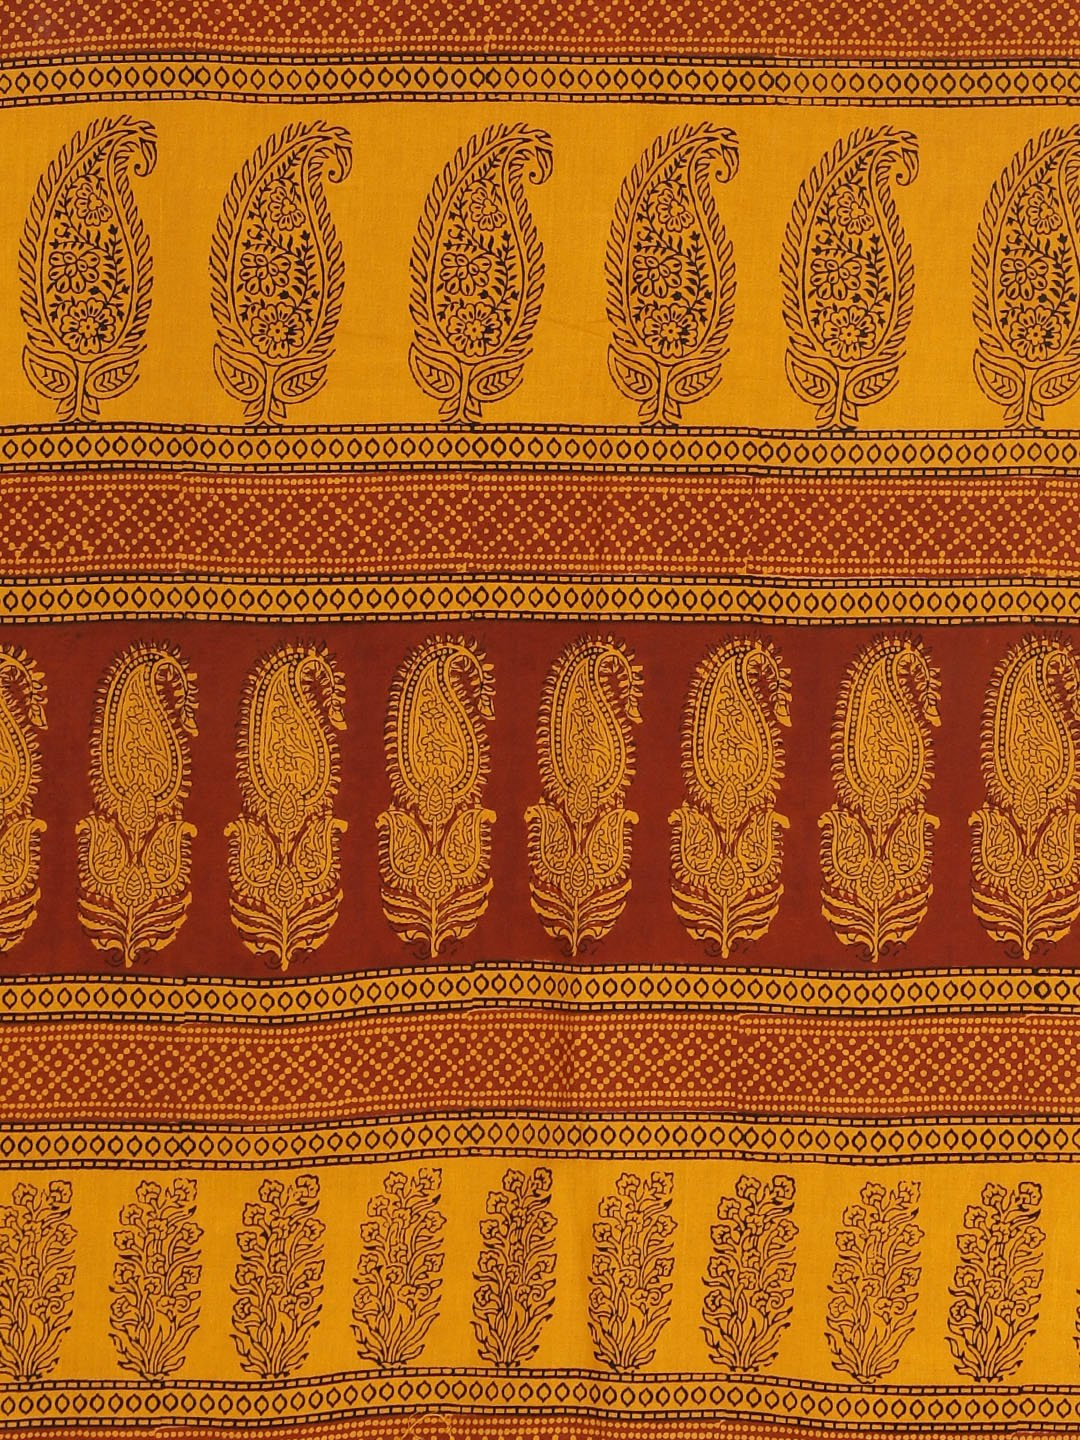 Mustard Yellow Maroon Handblock Print Saree-Saree-Kalakari India-MYBASA0014-Bagh, Cotton, Geographical Indication, Hand Blocks, Hand Crafted, Heritage Prints, Natural Dyes, Sarees, Sustainable Fabrics-[Linen,Ethnic,wear,Fashionista,Handloom,Handicraft,Indigo,blockprint,block,print,Cotton,Chanderi,Blue, latest,classy,party,bollywood,trendy,summer,style,traditional,formal,elegant,unique,style,hand,block,print, dabu,booti,gift,present,glamorous,affordable,collectible,Sari,Saree,printed, holi, Diwal